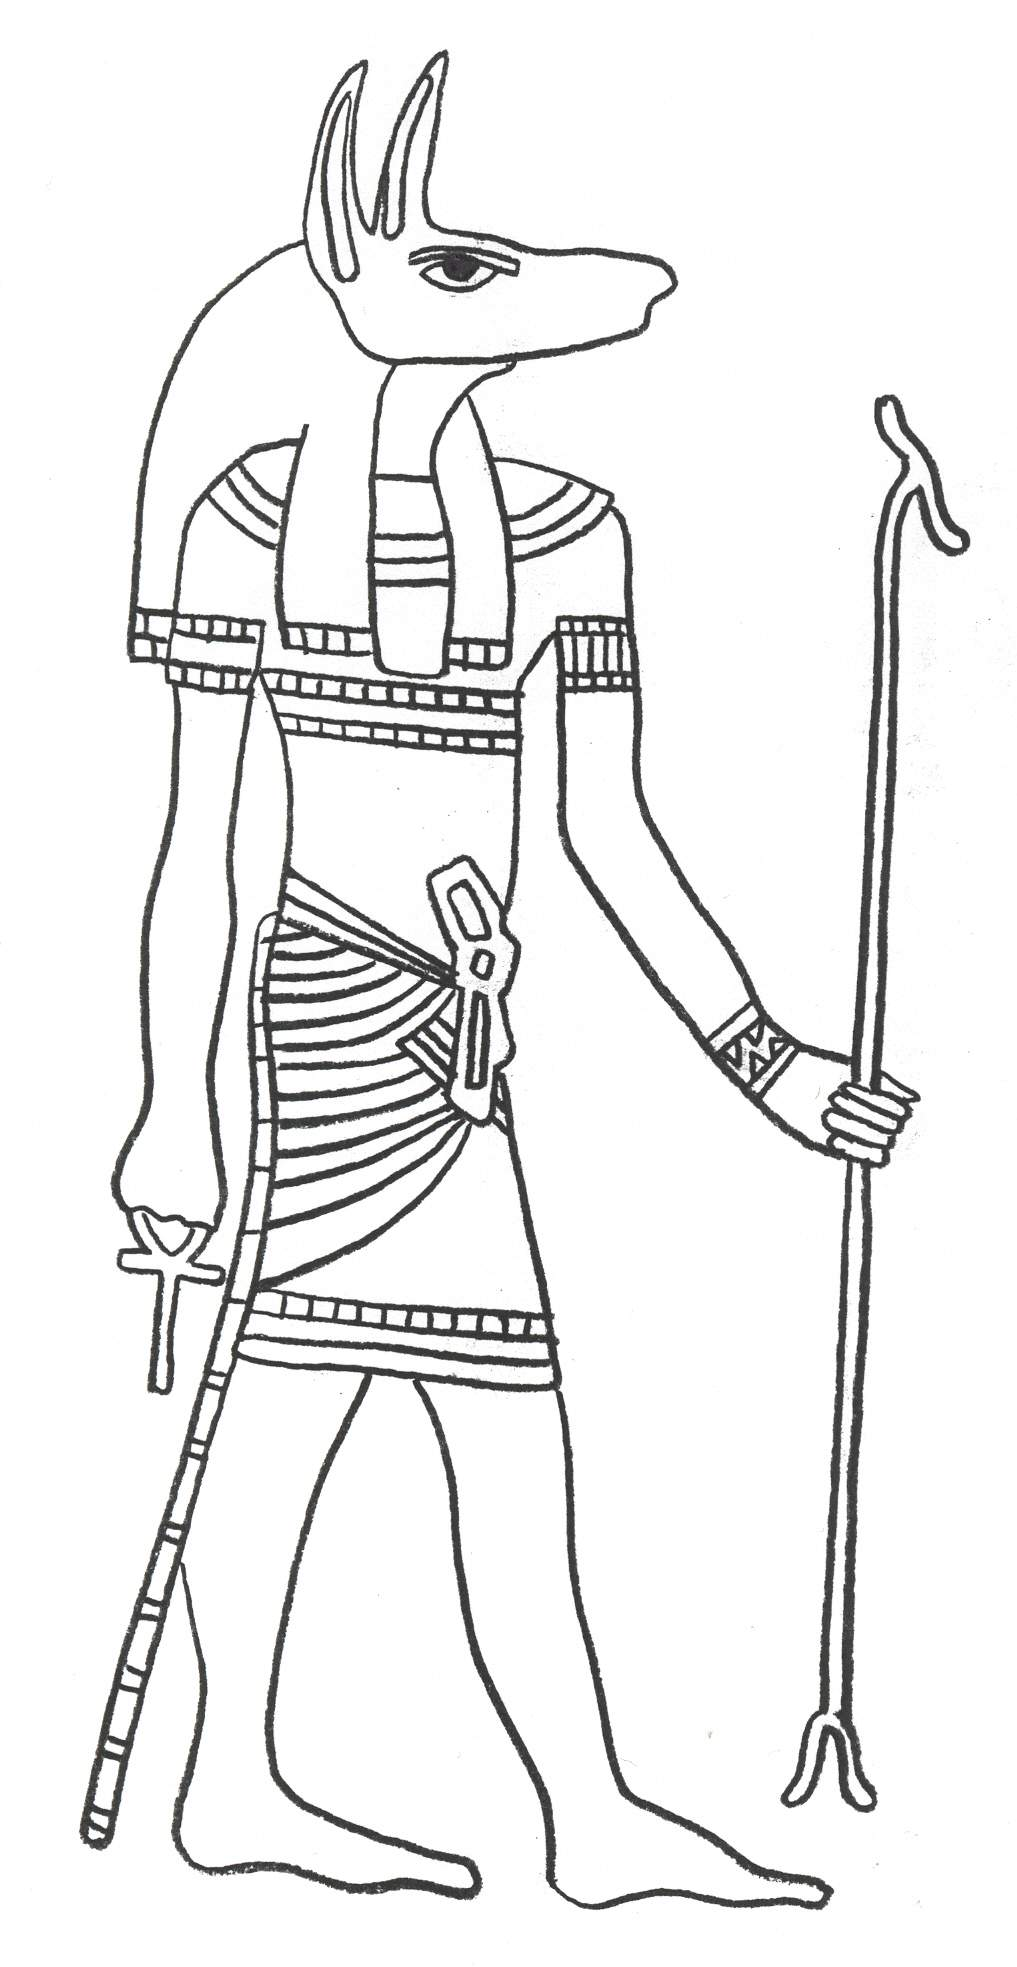 hat coloring pages ancient egypt - photo#12